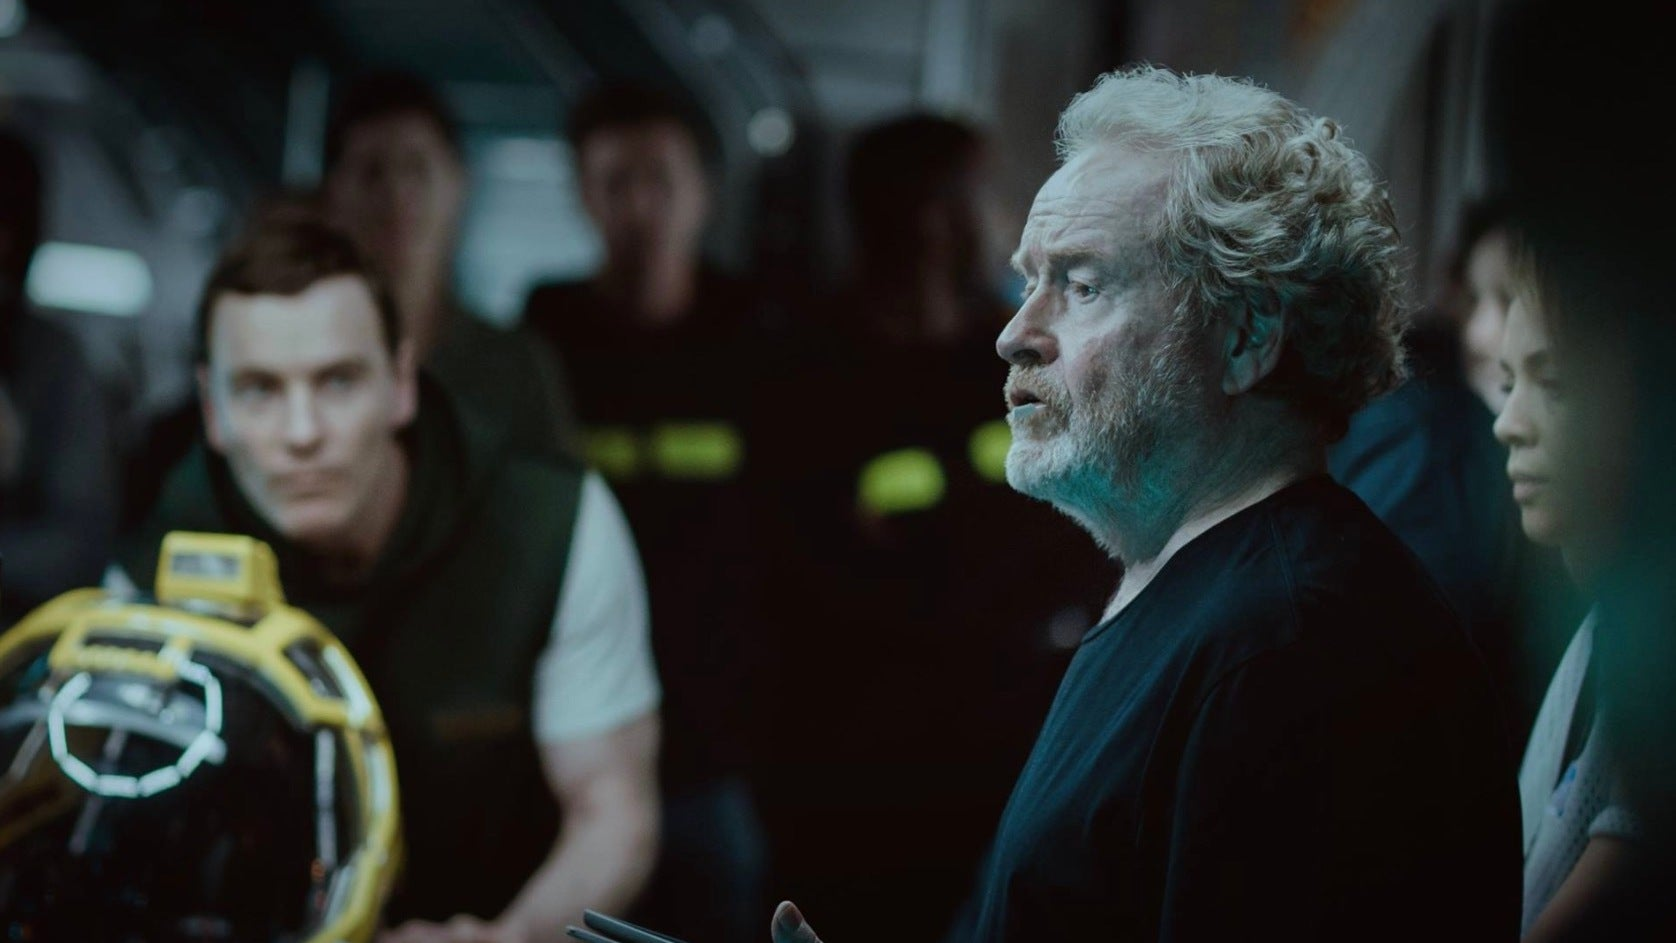 Ridley Scott Seems To Think The Alien Franchise Doesn't Need An Alien Any More